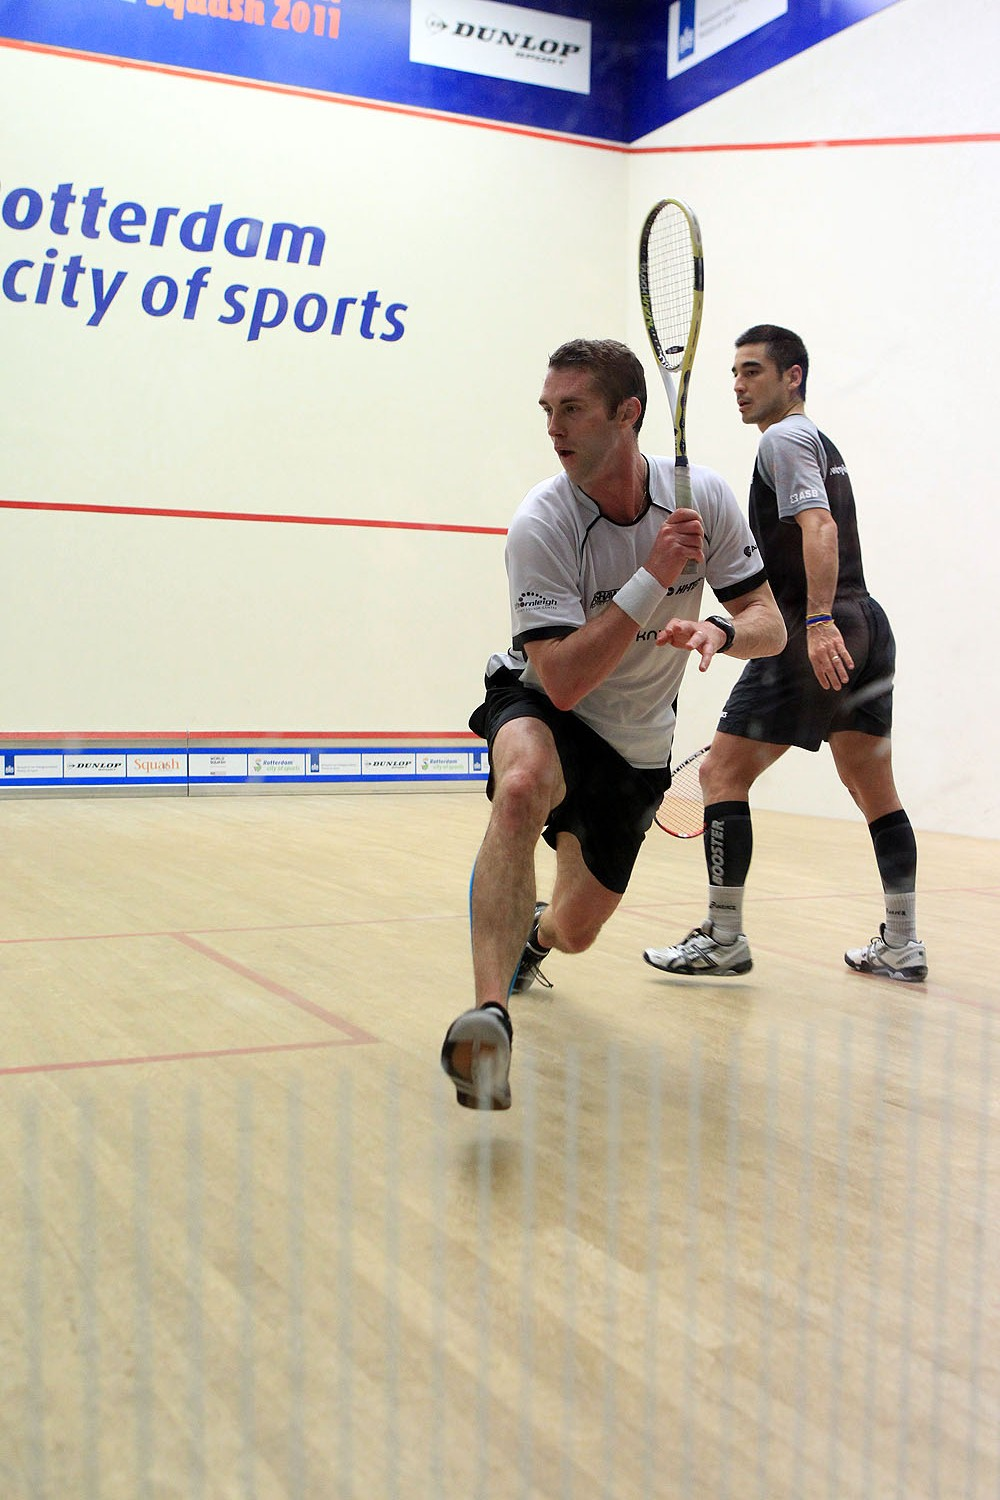 how to become a pro squash player